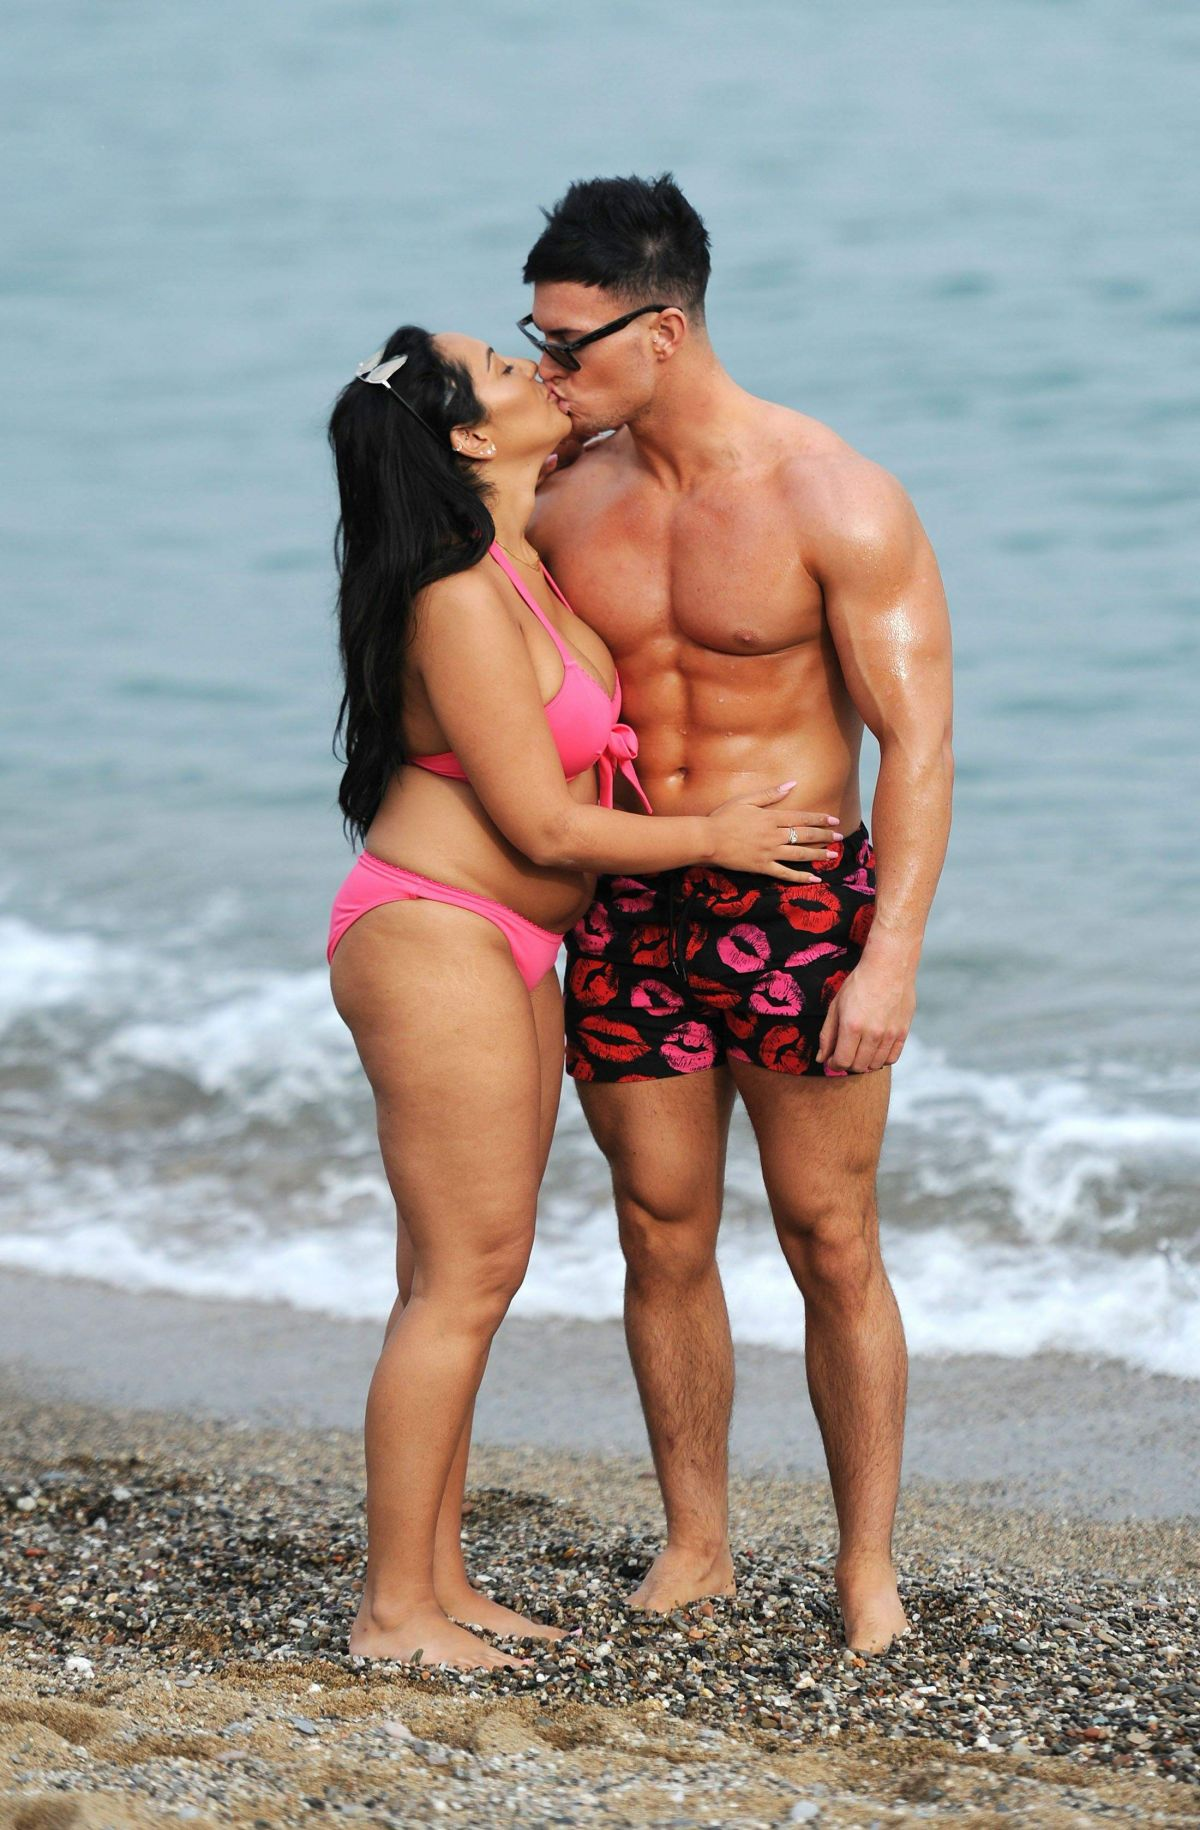 Sophie Kasaei in Pink Bikini on the beach in Lanzarote Pic 7 of 35